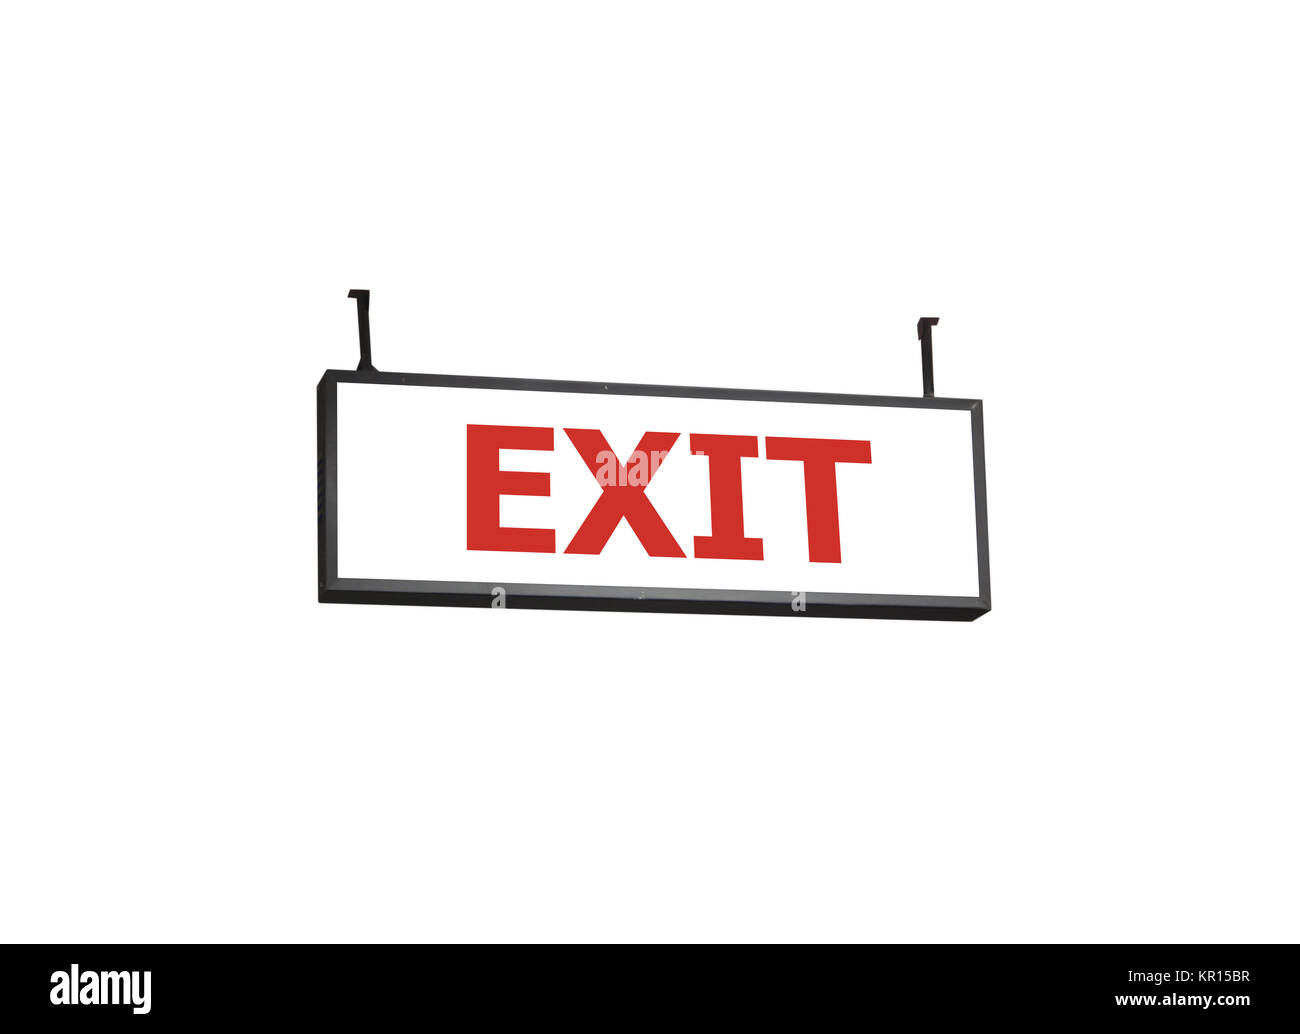 Exit signboard on white background - Stock Image